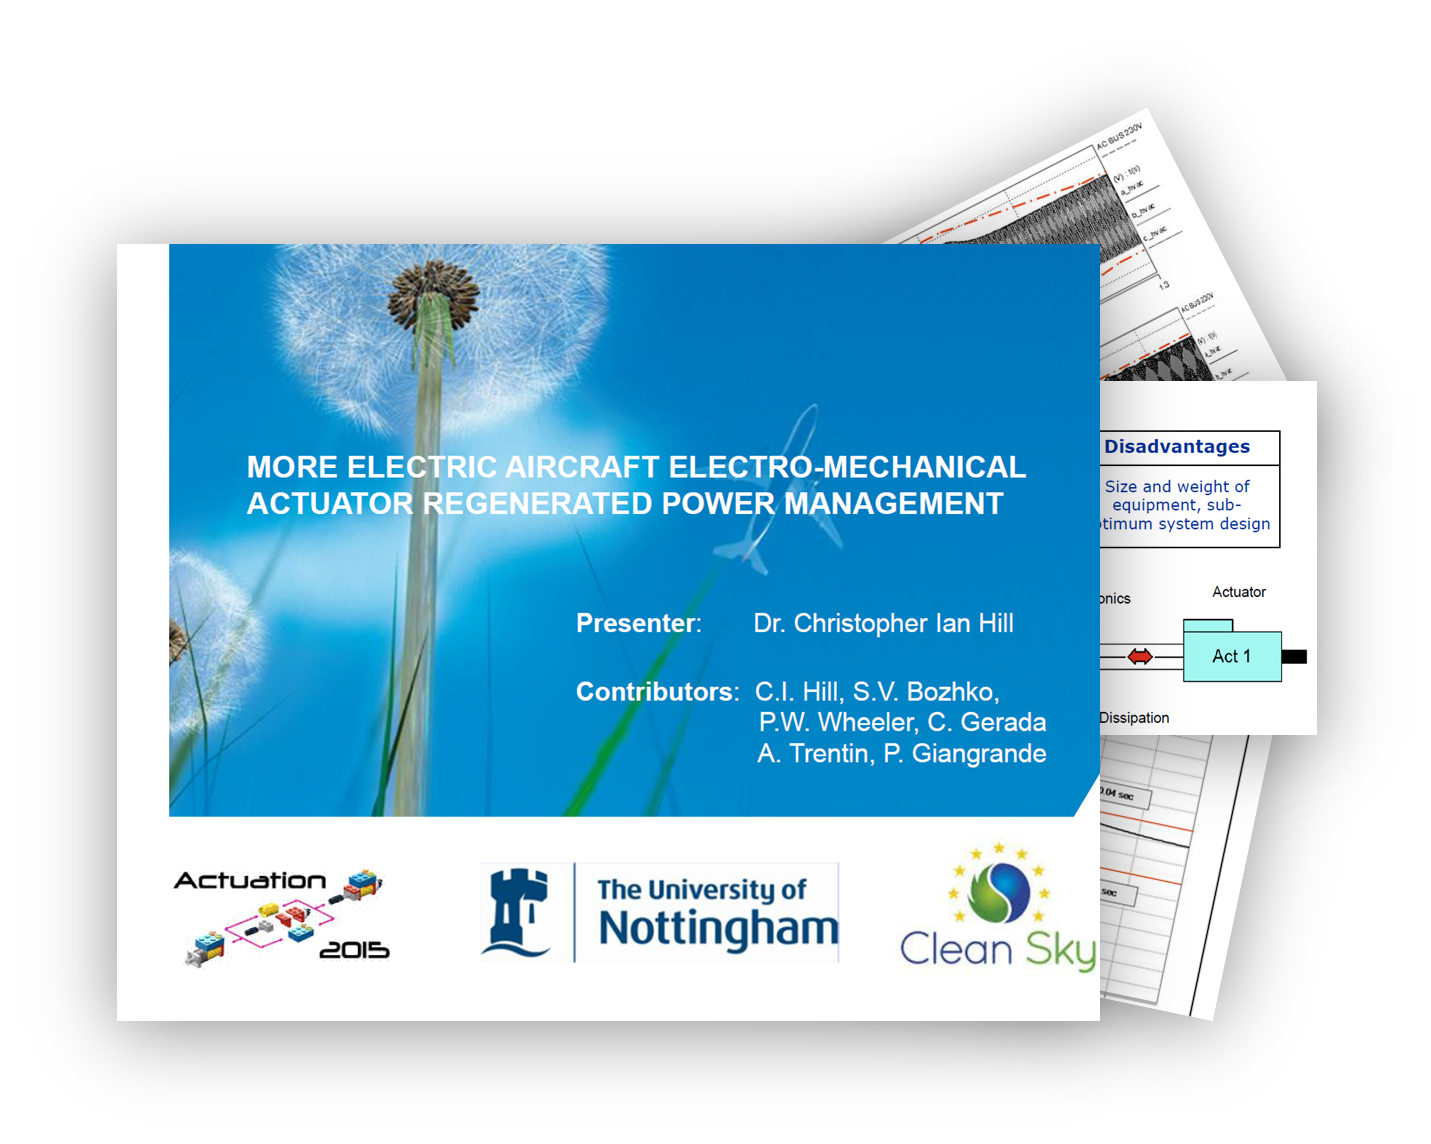 More Electric Aircraft Electro-Mechanical Actuator Regenerated Power Management